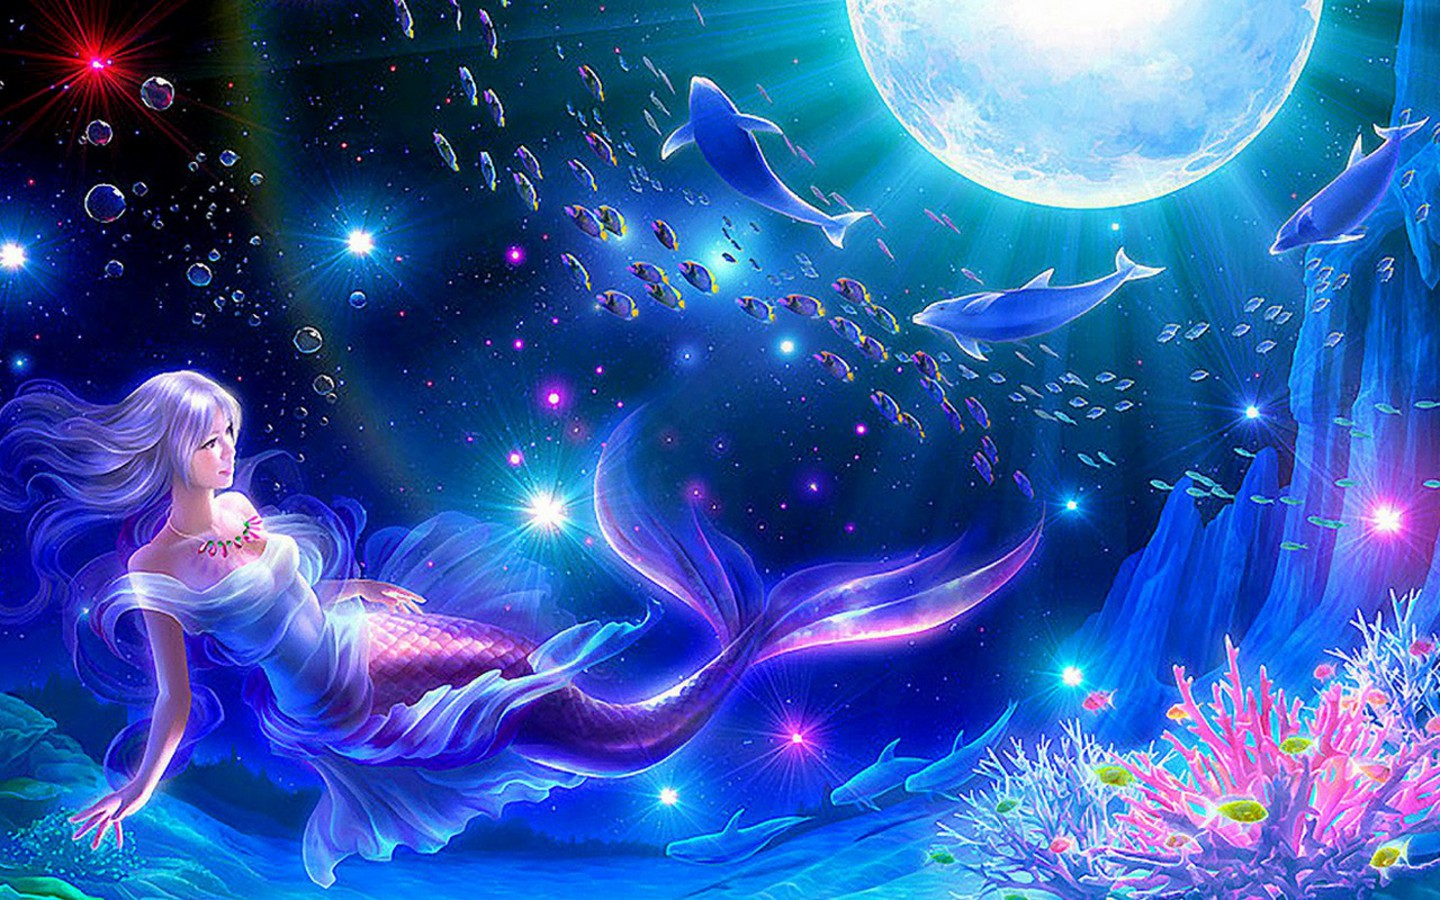 Beautiful Fantasy Girls HQ Wallpapers Download Size 1440x900